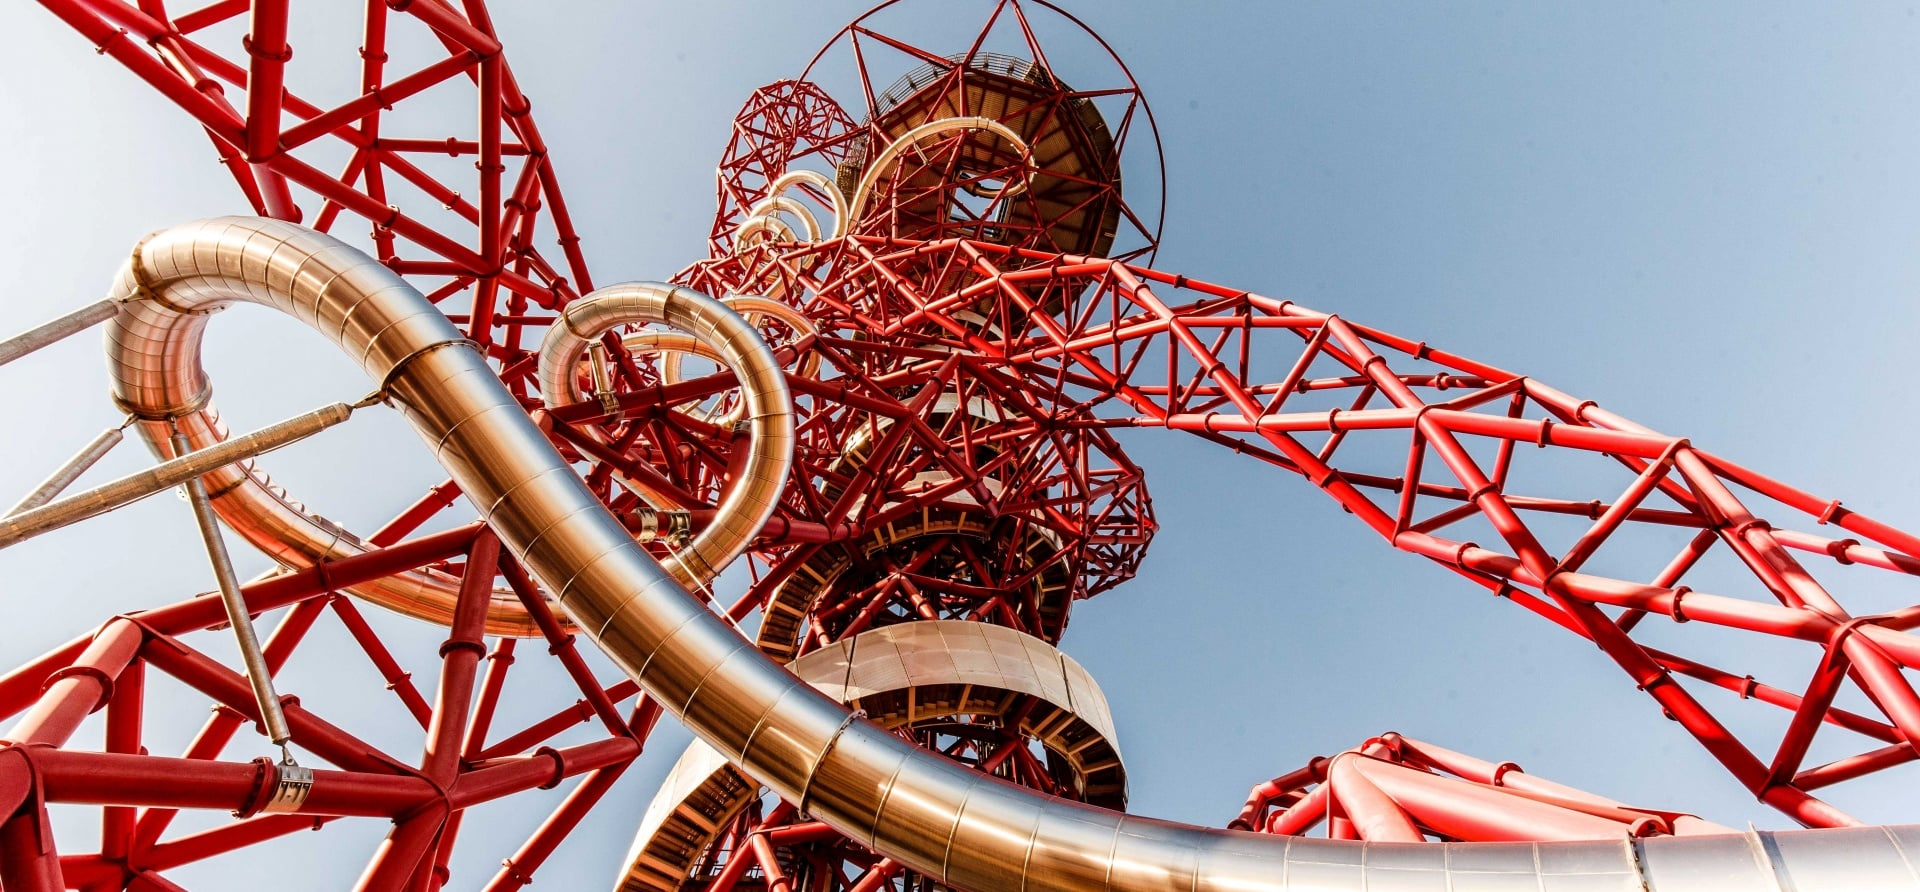 The Slide at The ArcelorMittal Orbit For 2 Adults-3